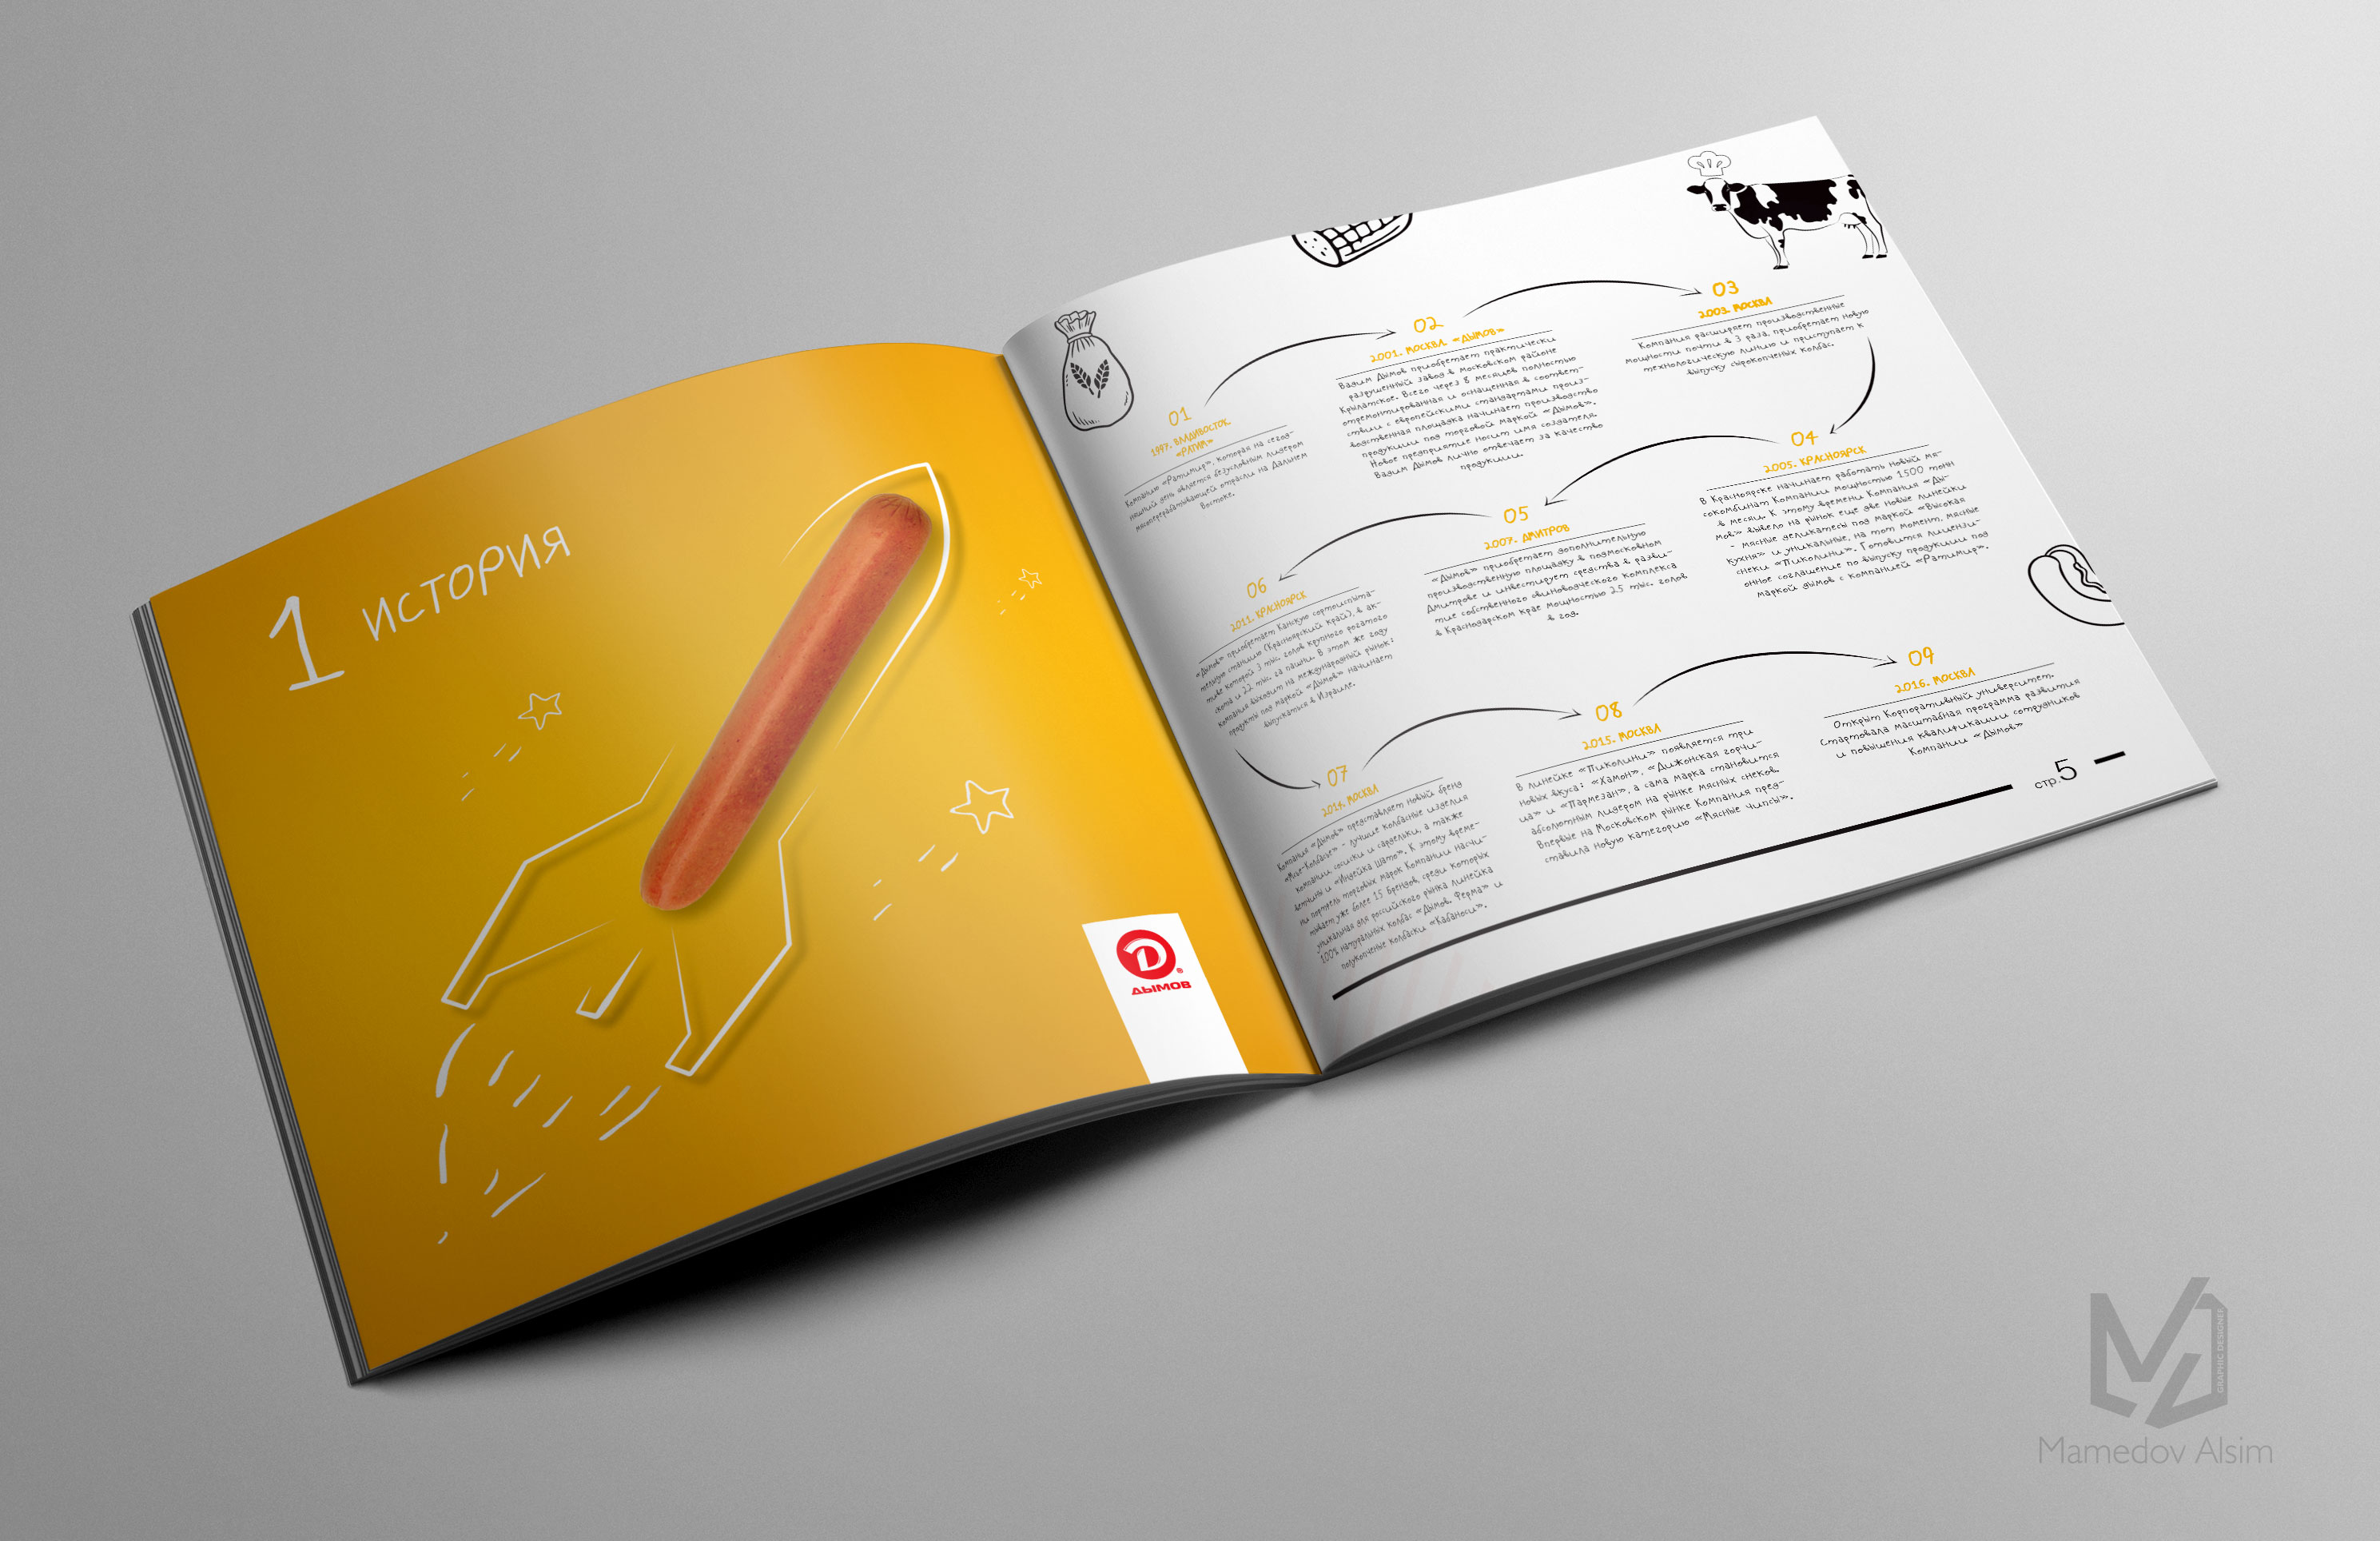 DYMOV_square_booklet_scetch_concept_history